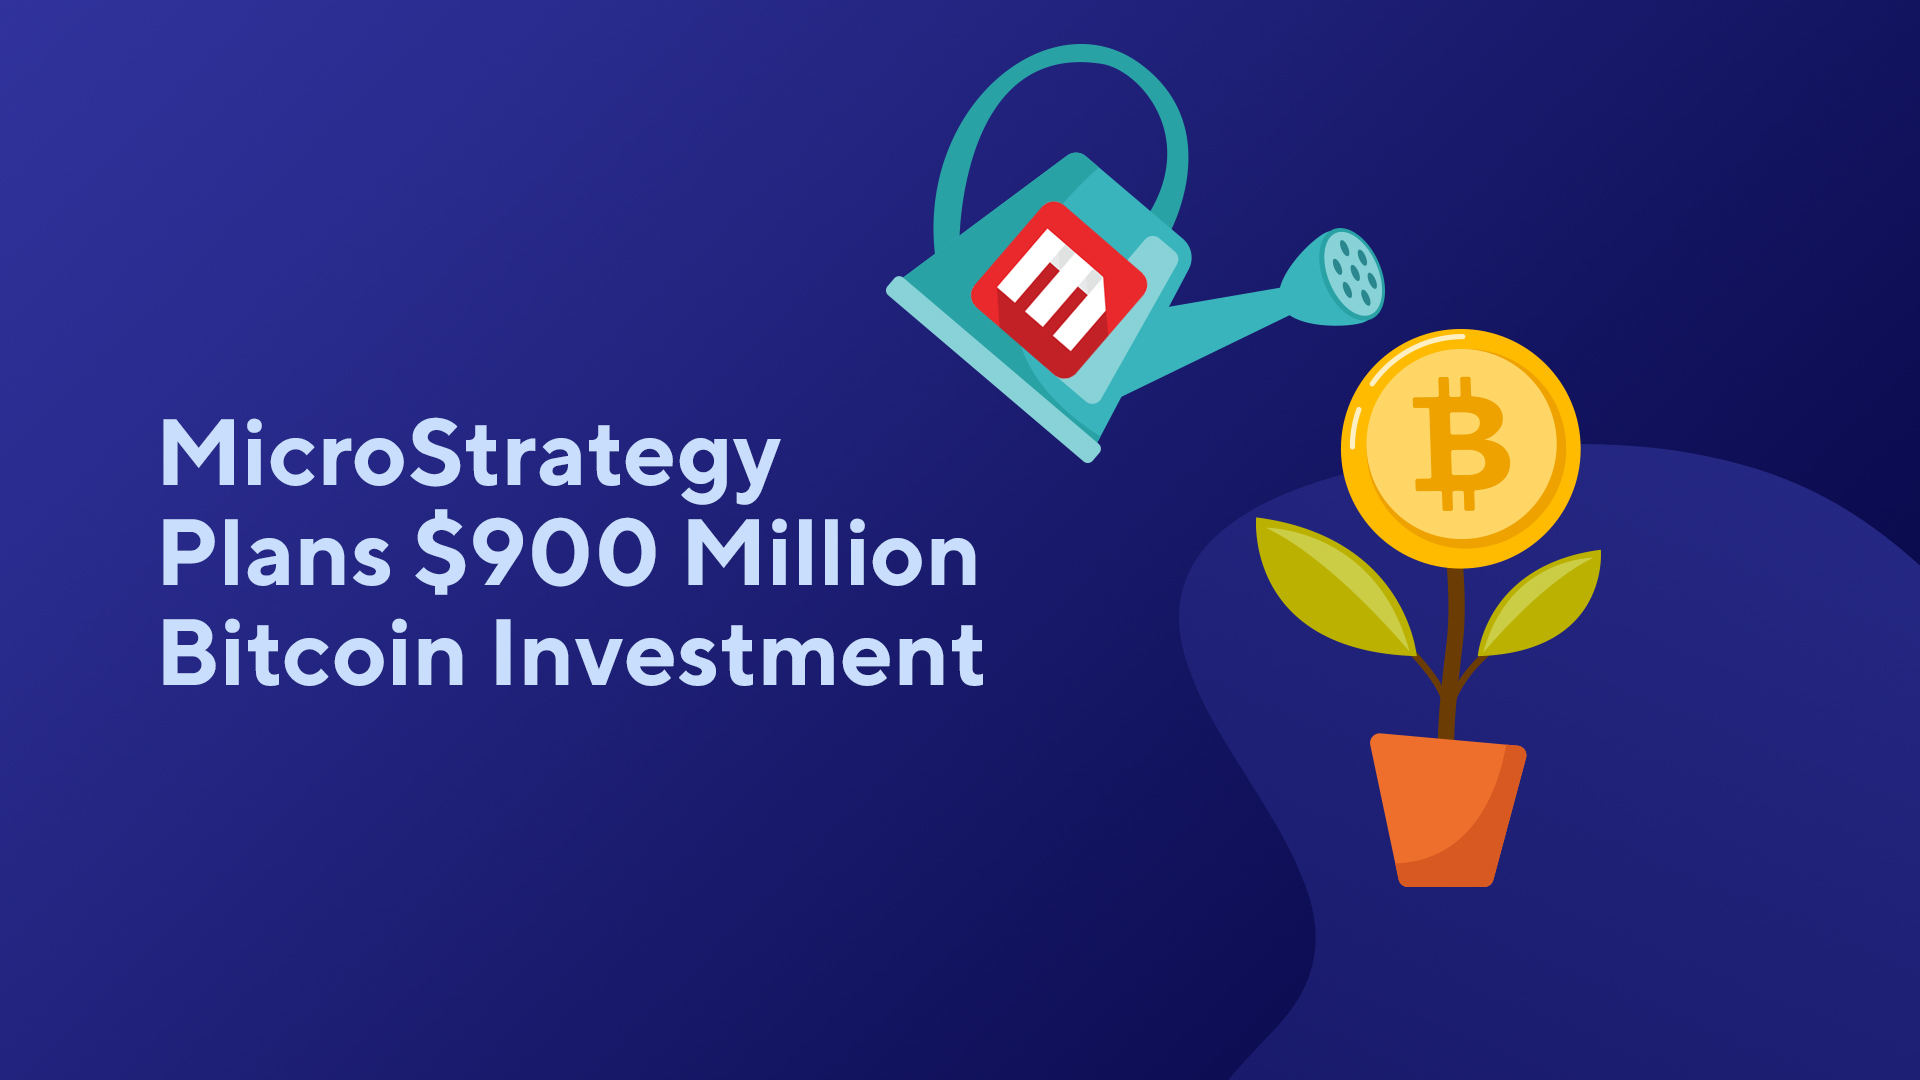 MicroStrategy Plans $900 Million Bitcoin Investment